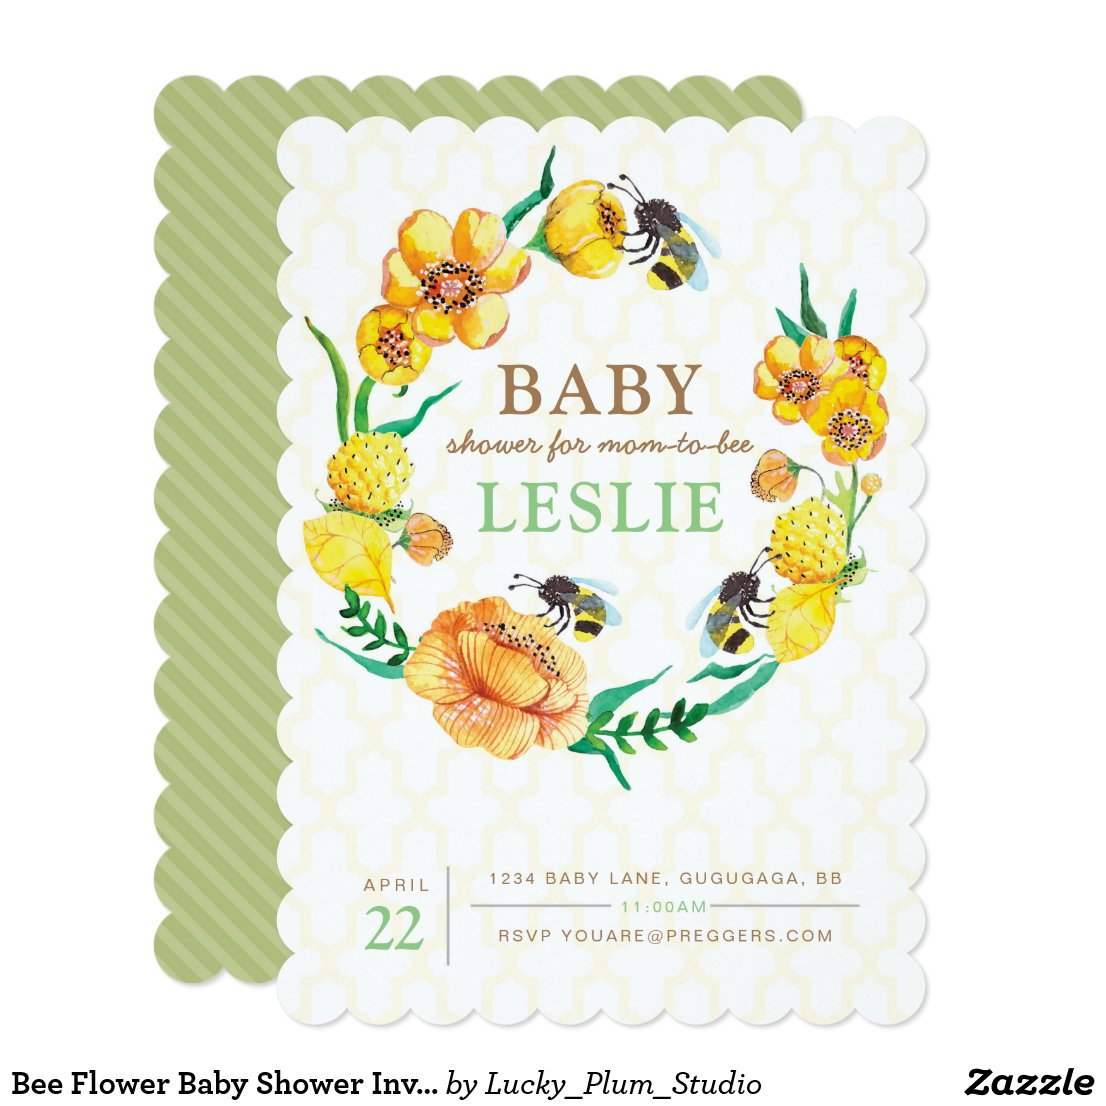 Bee Flower Baby Shower Invite